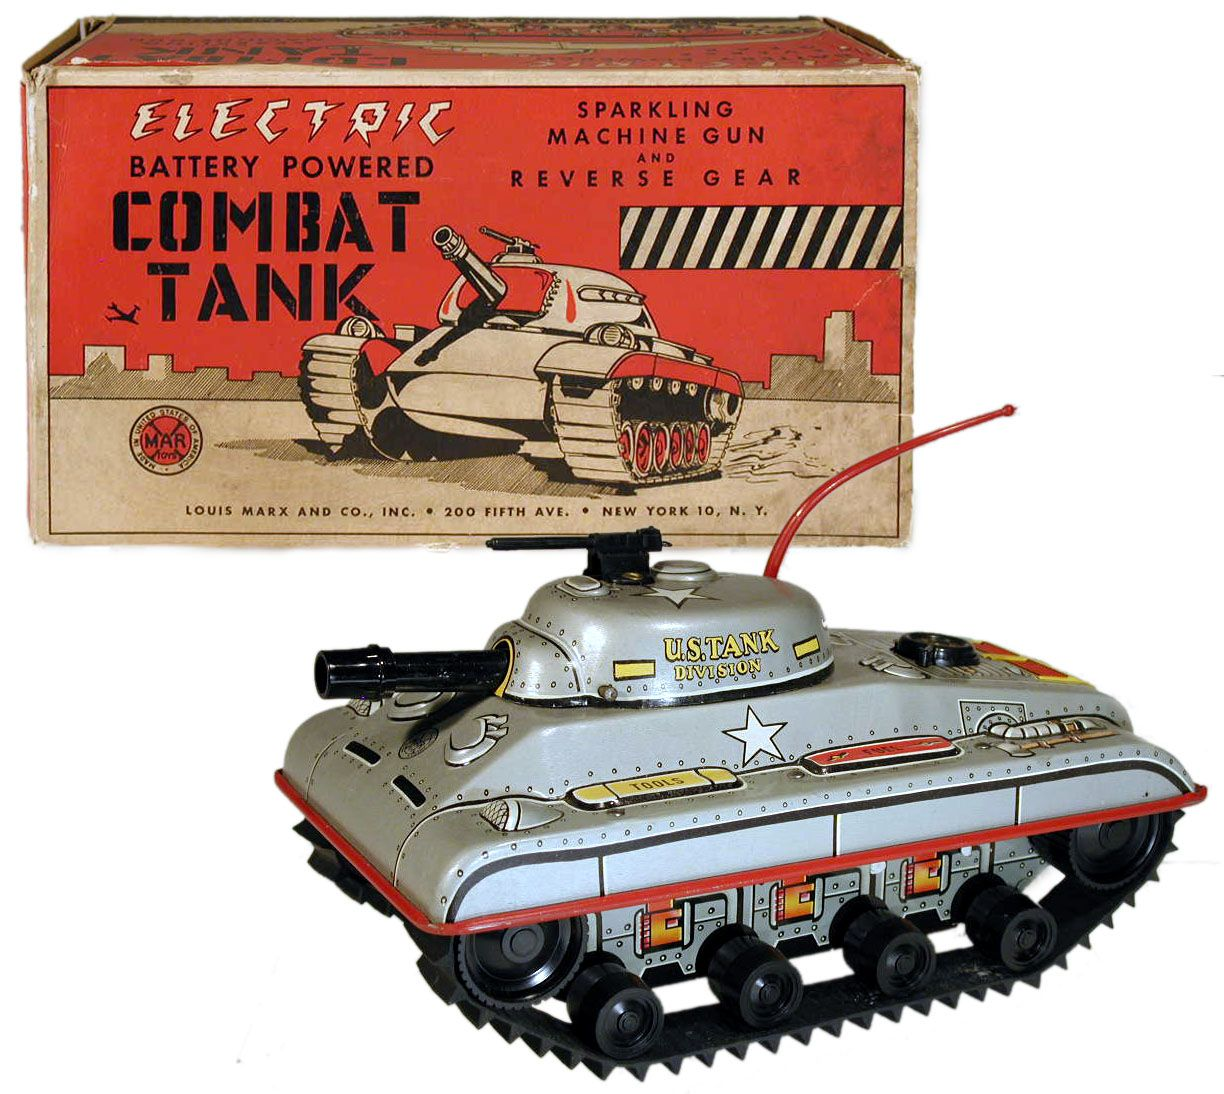 c.1951 Marx, Electric Battery Powered Combat Tank (Factory Sample)